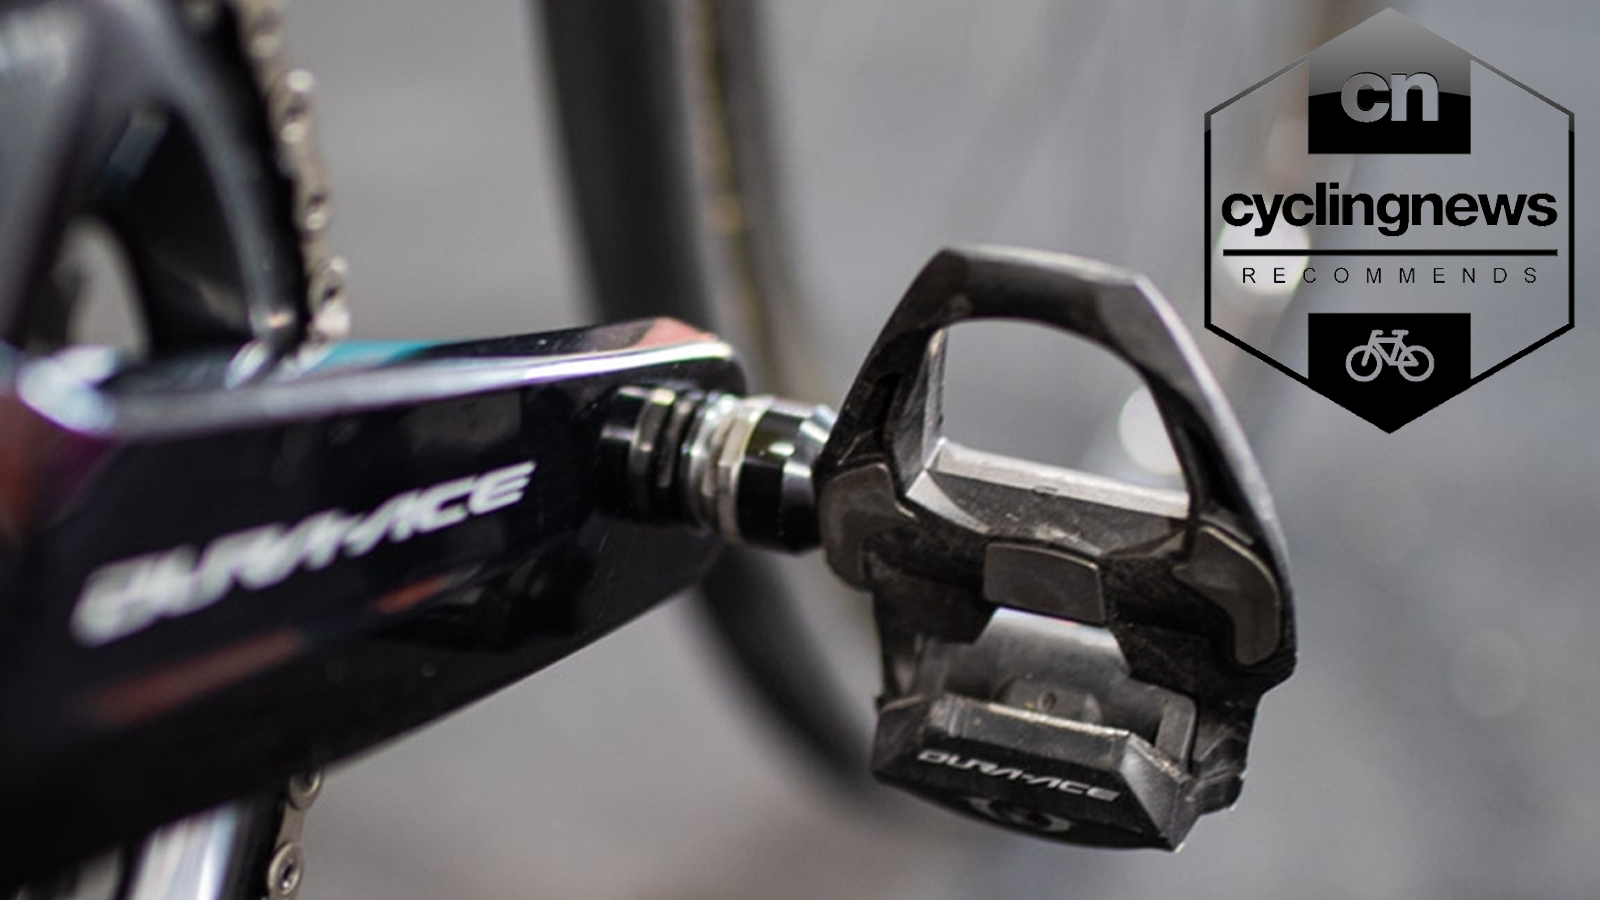 Best Road Bike Pedals Our Pick Of The Best Performance Road Bike